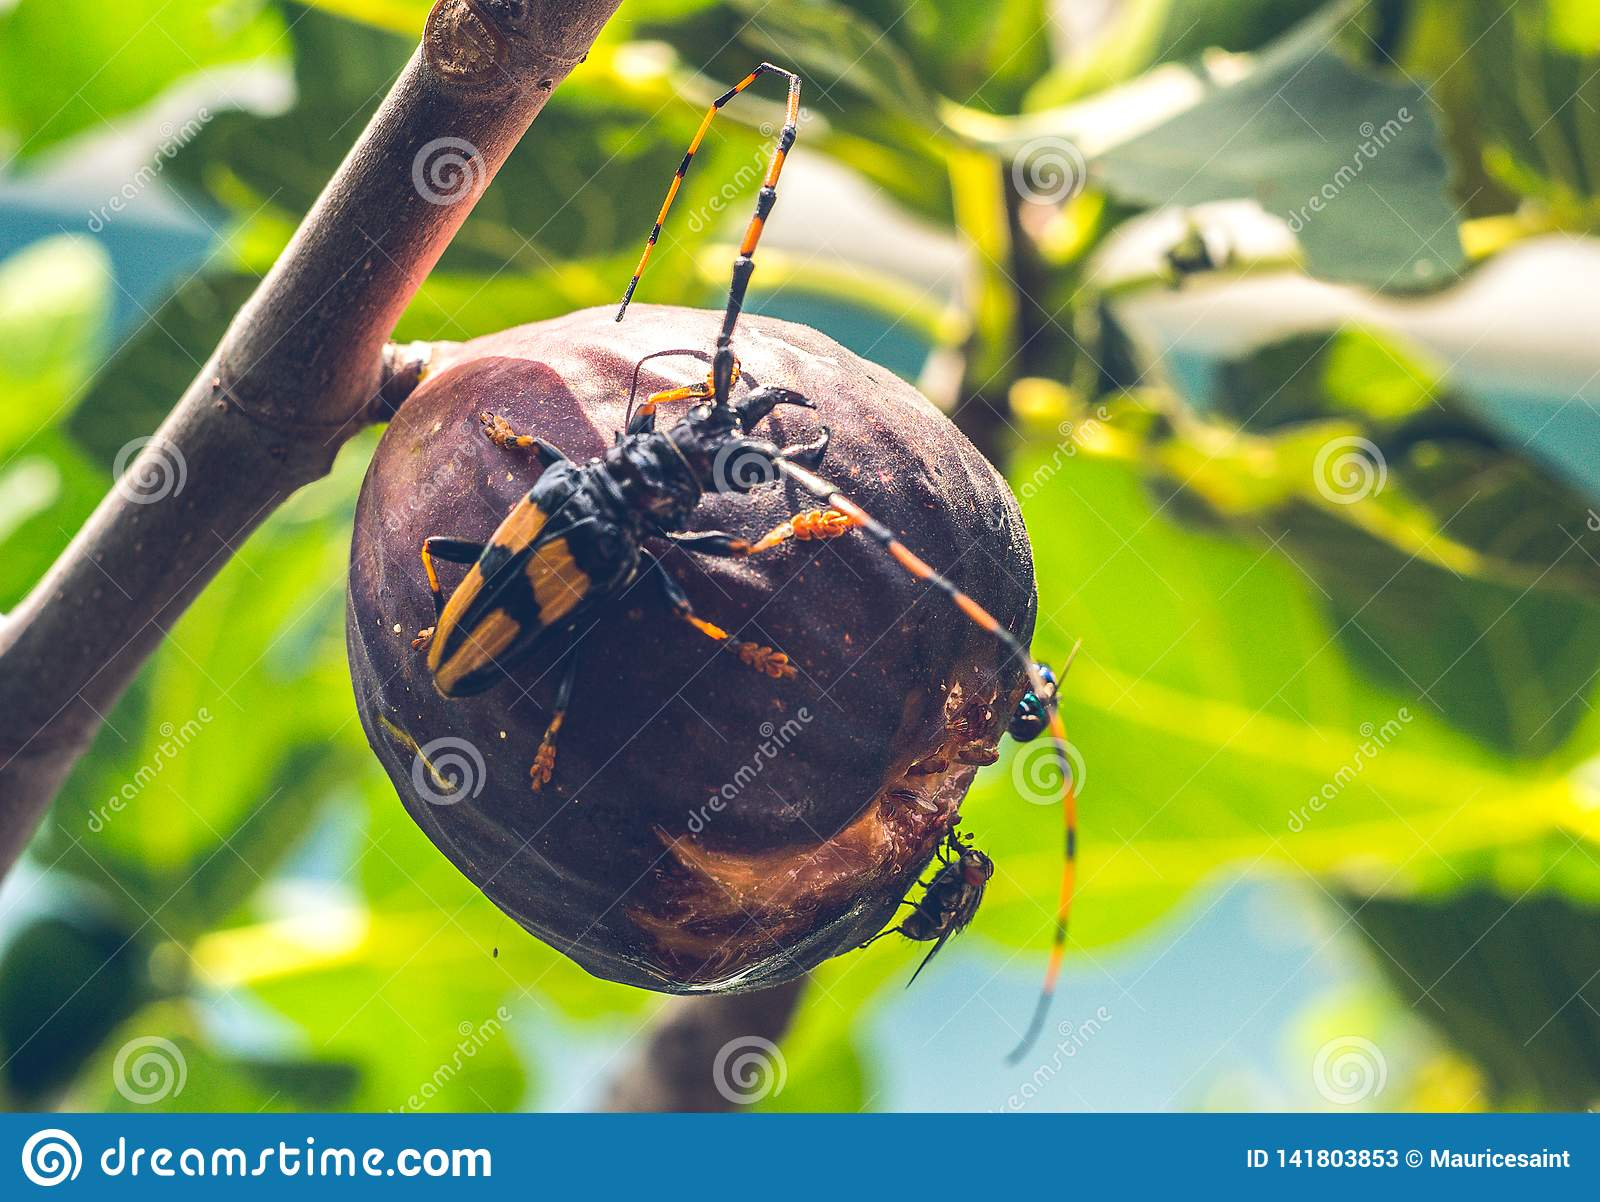 Insects eating fig on a tree